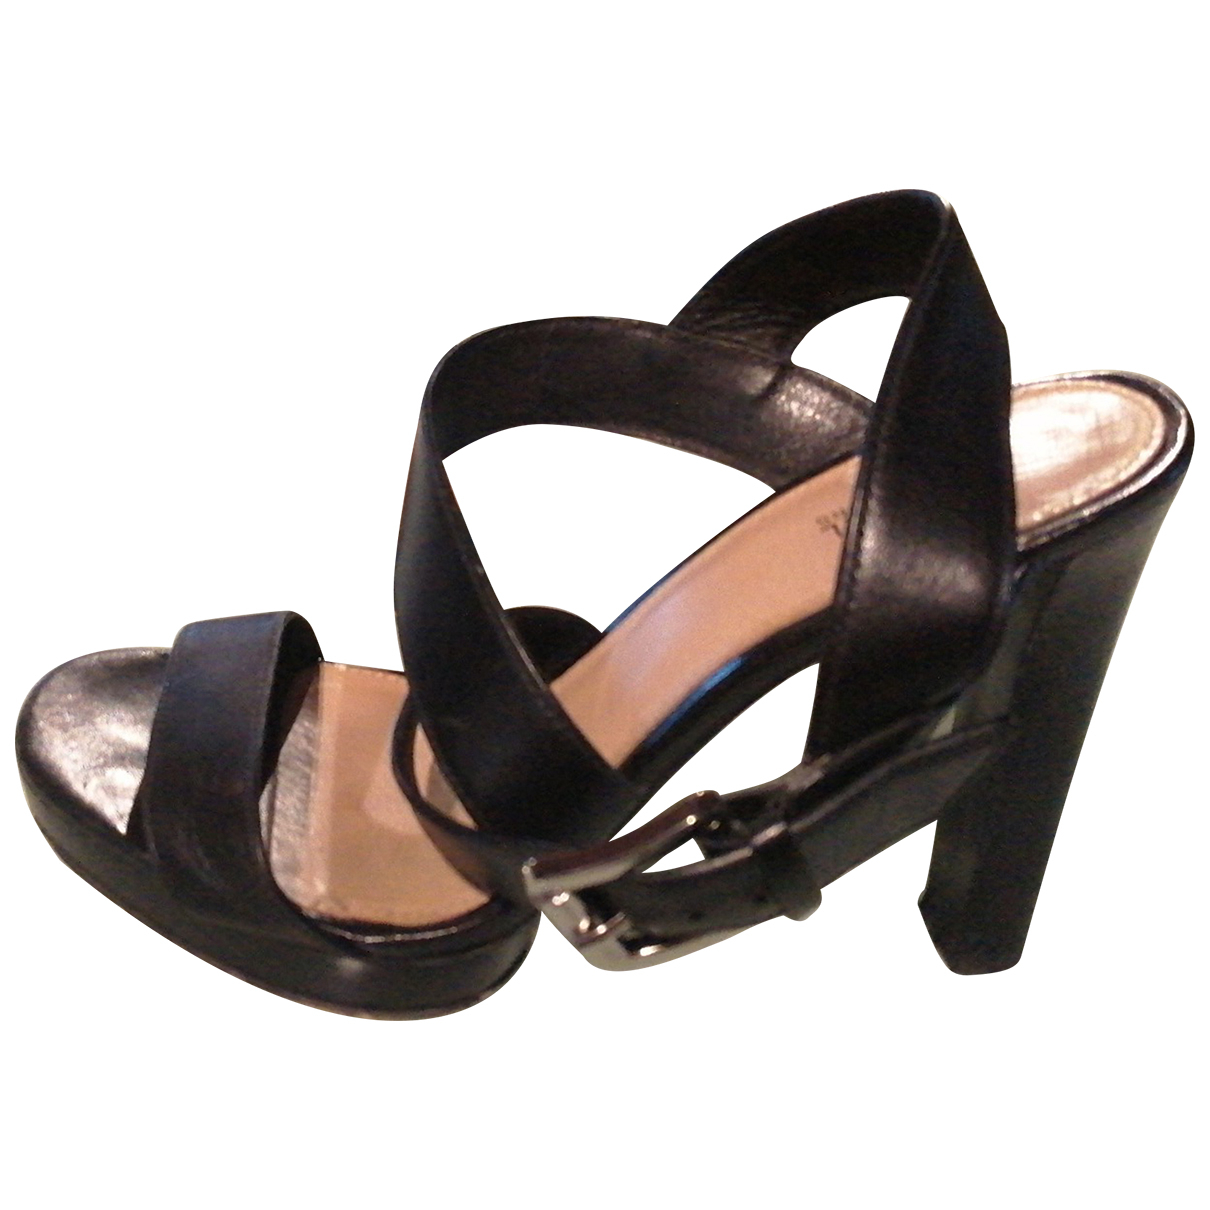 Michael Kors N Black Leather Sandals for Women 37.5 IT